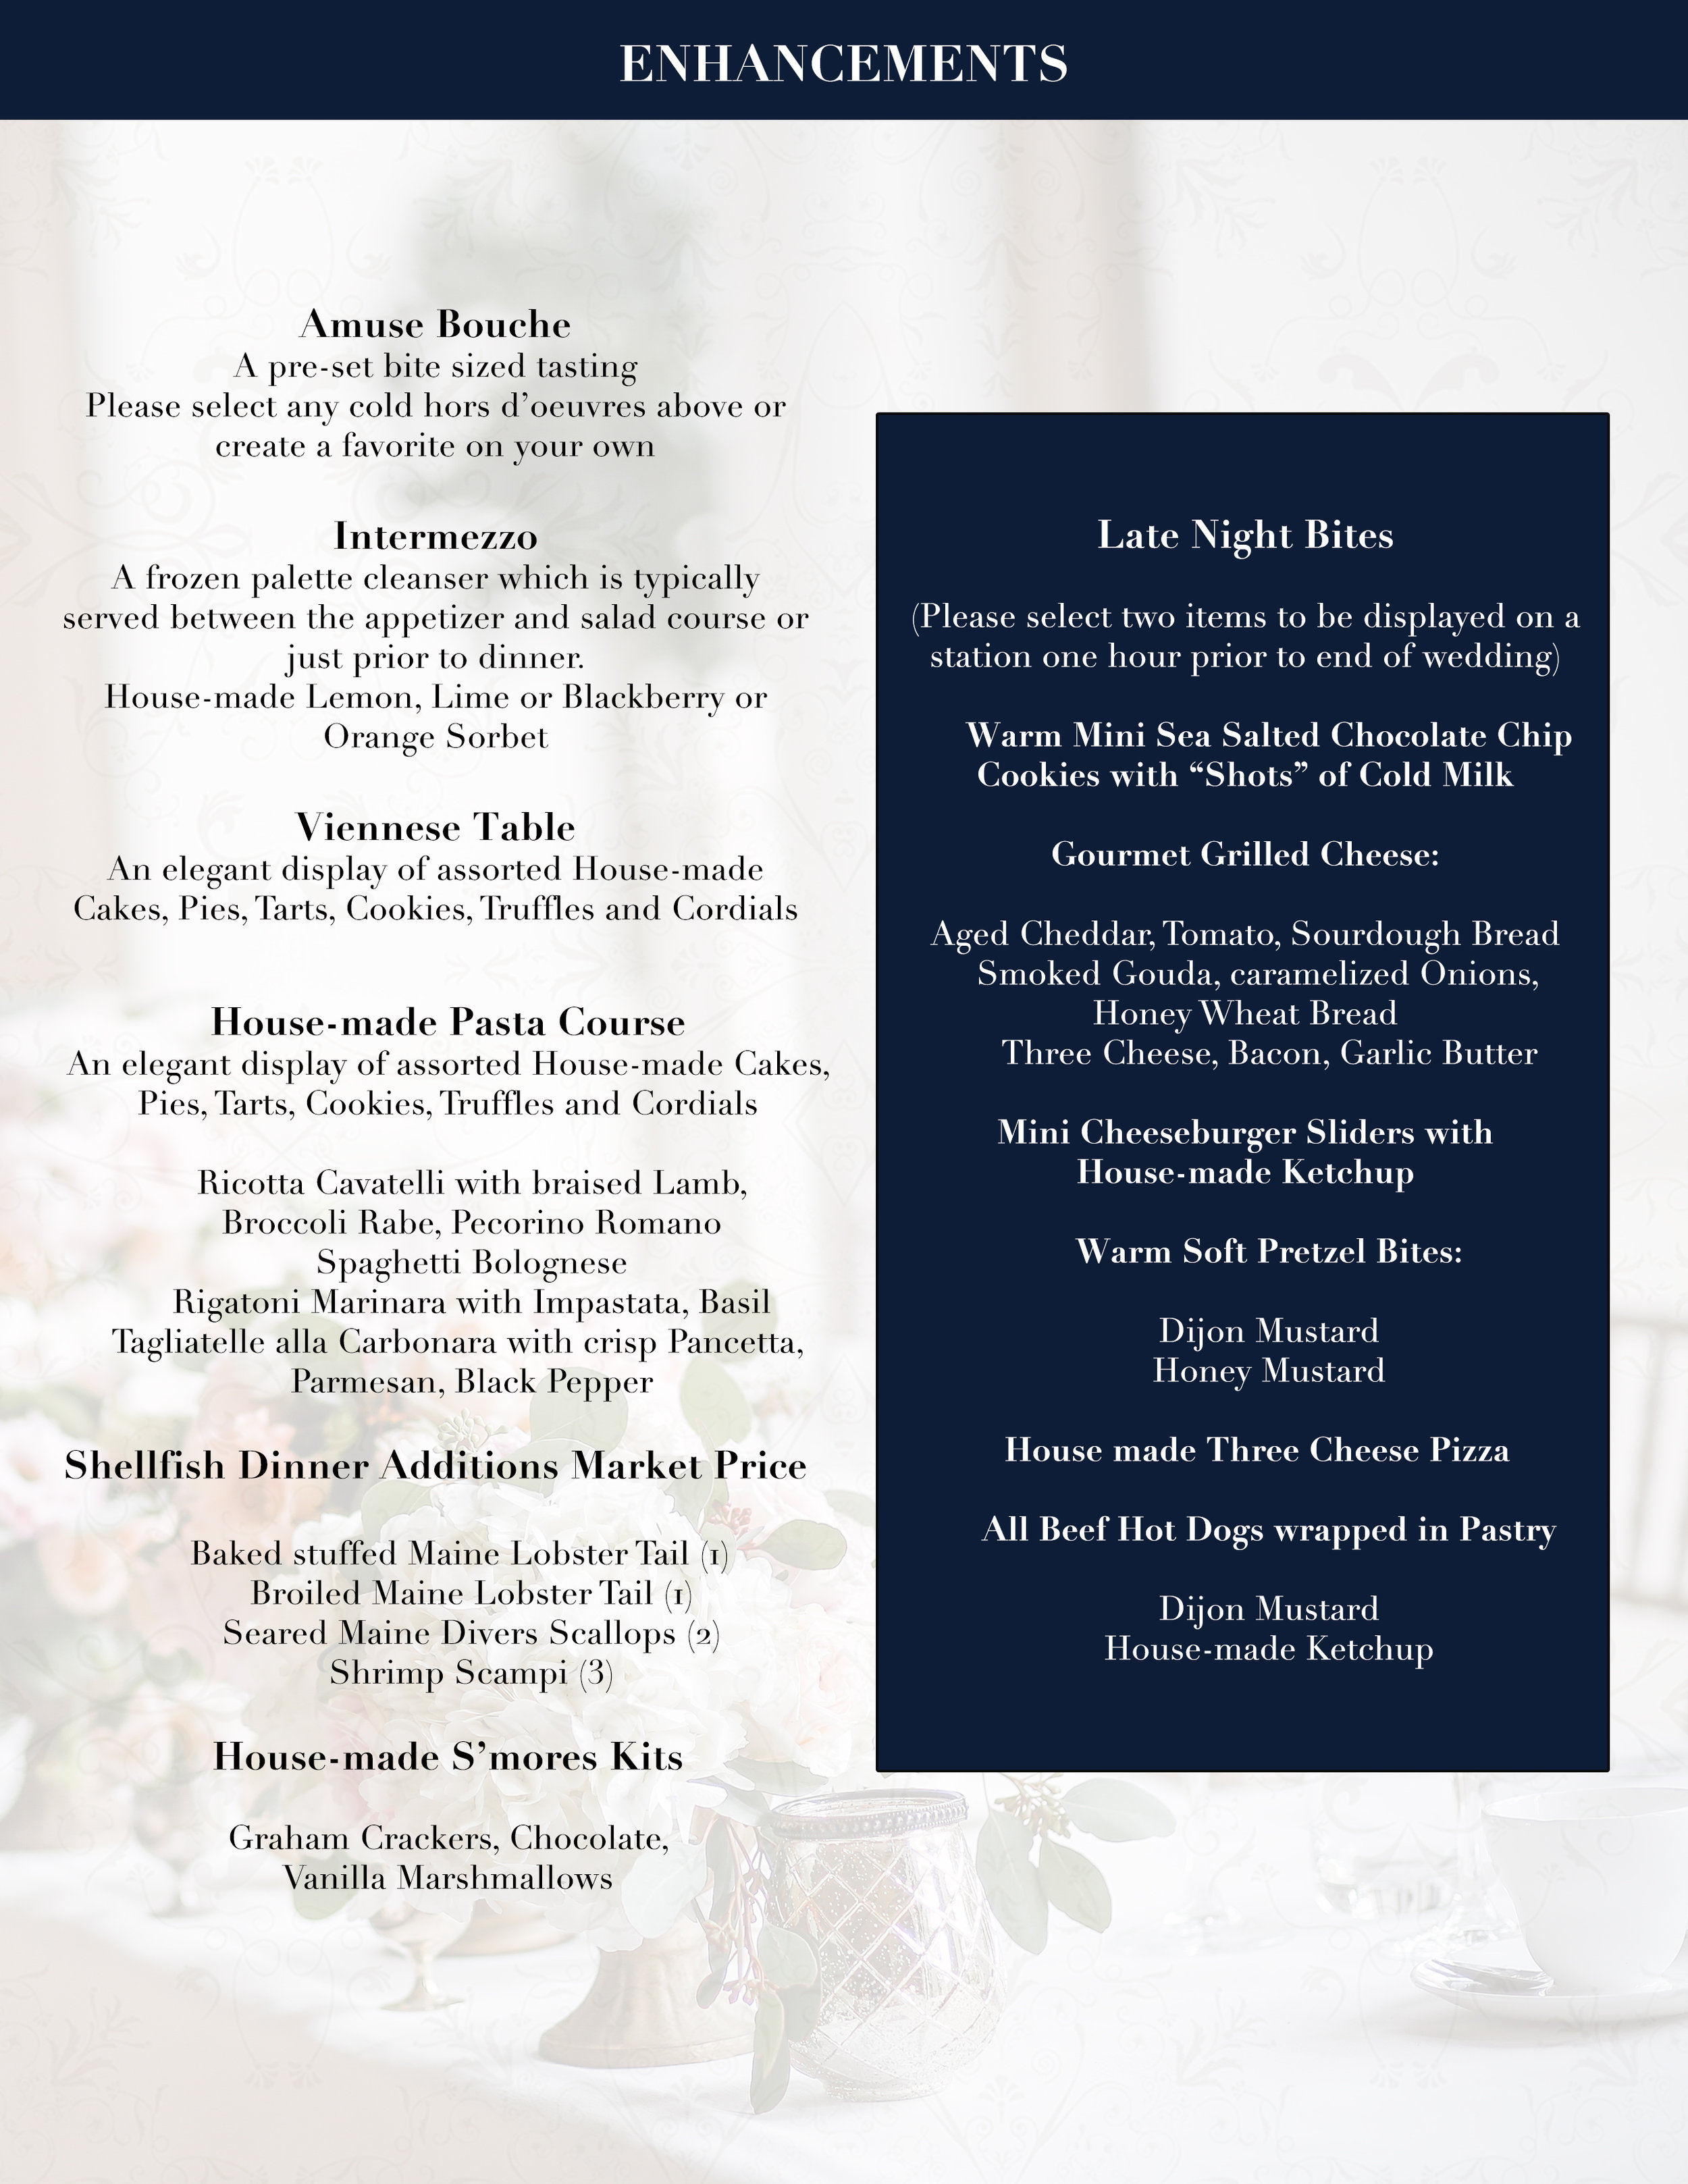 Wedding-Menu-PG-13-without-Pricing.jpg